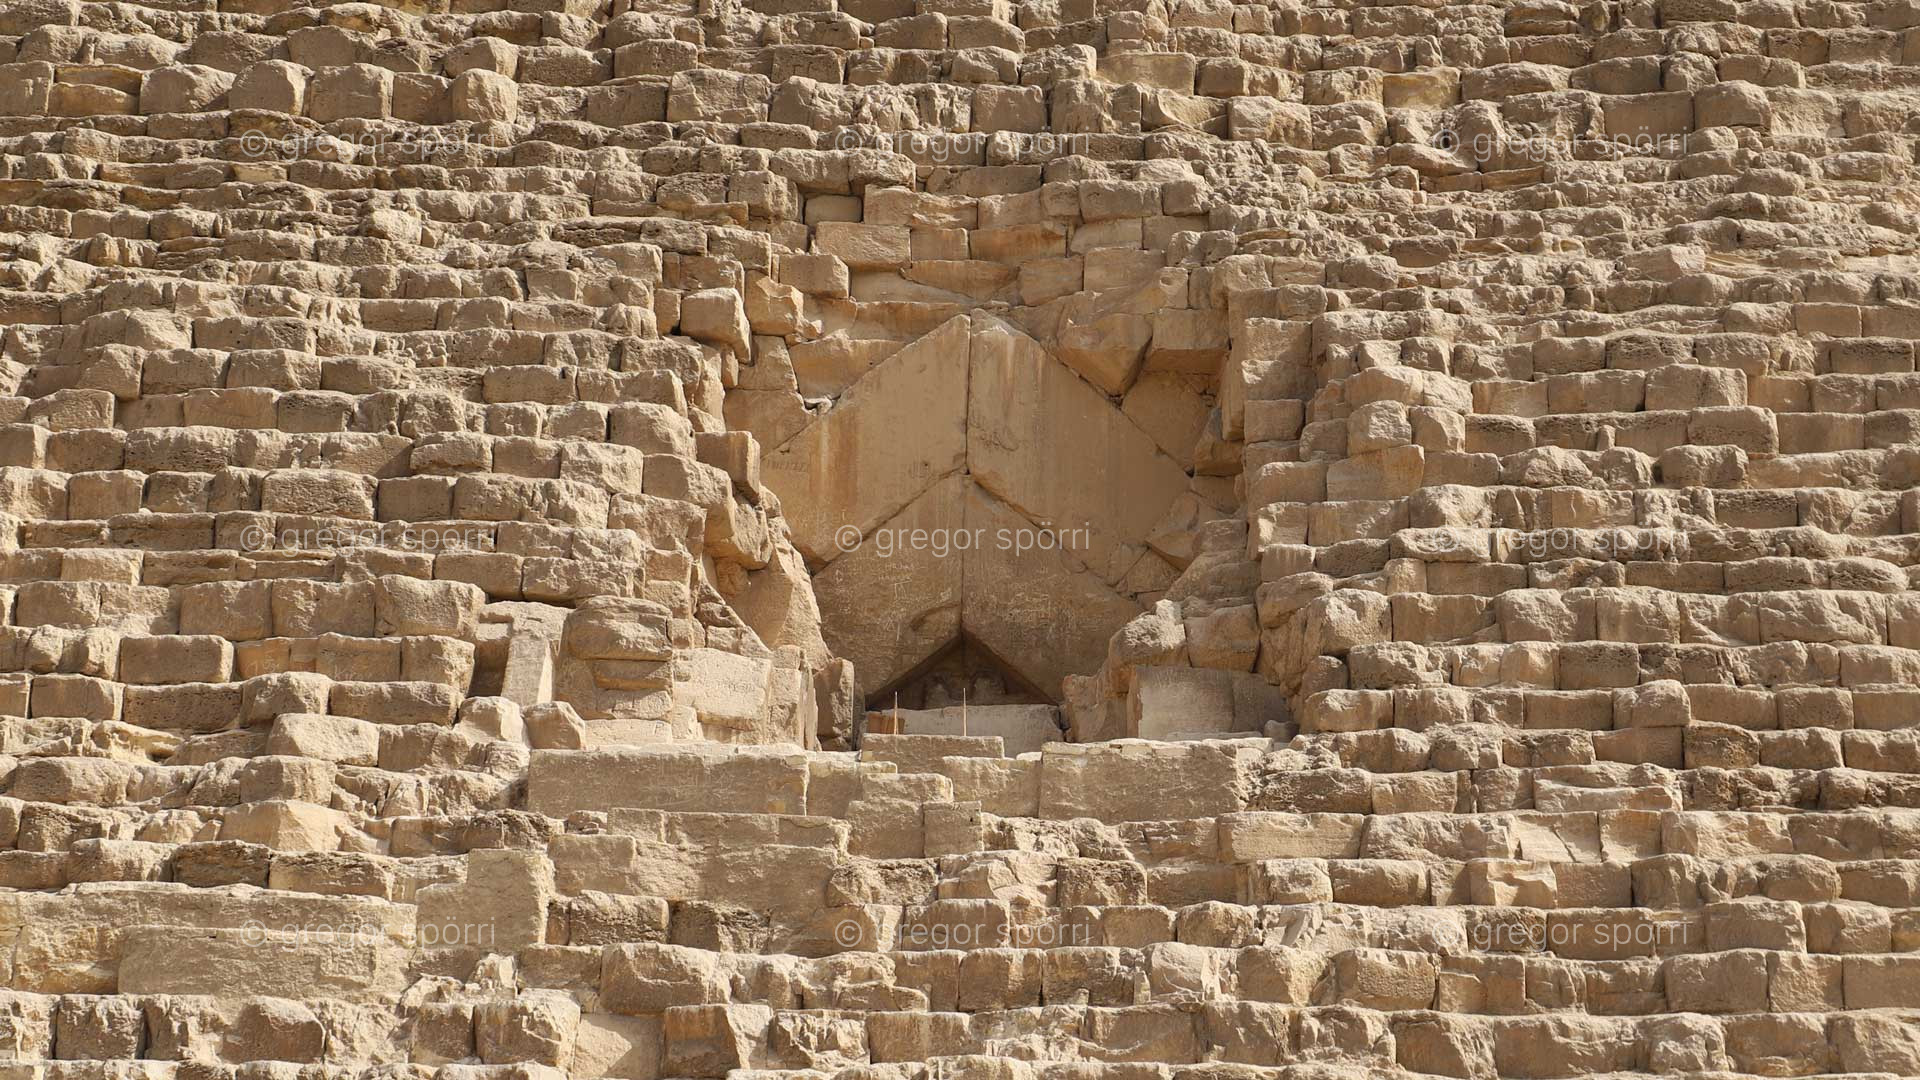 The original original entrance to the Great Pyramid